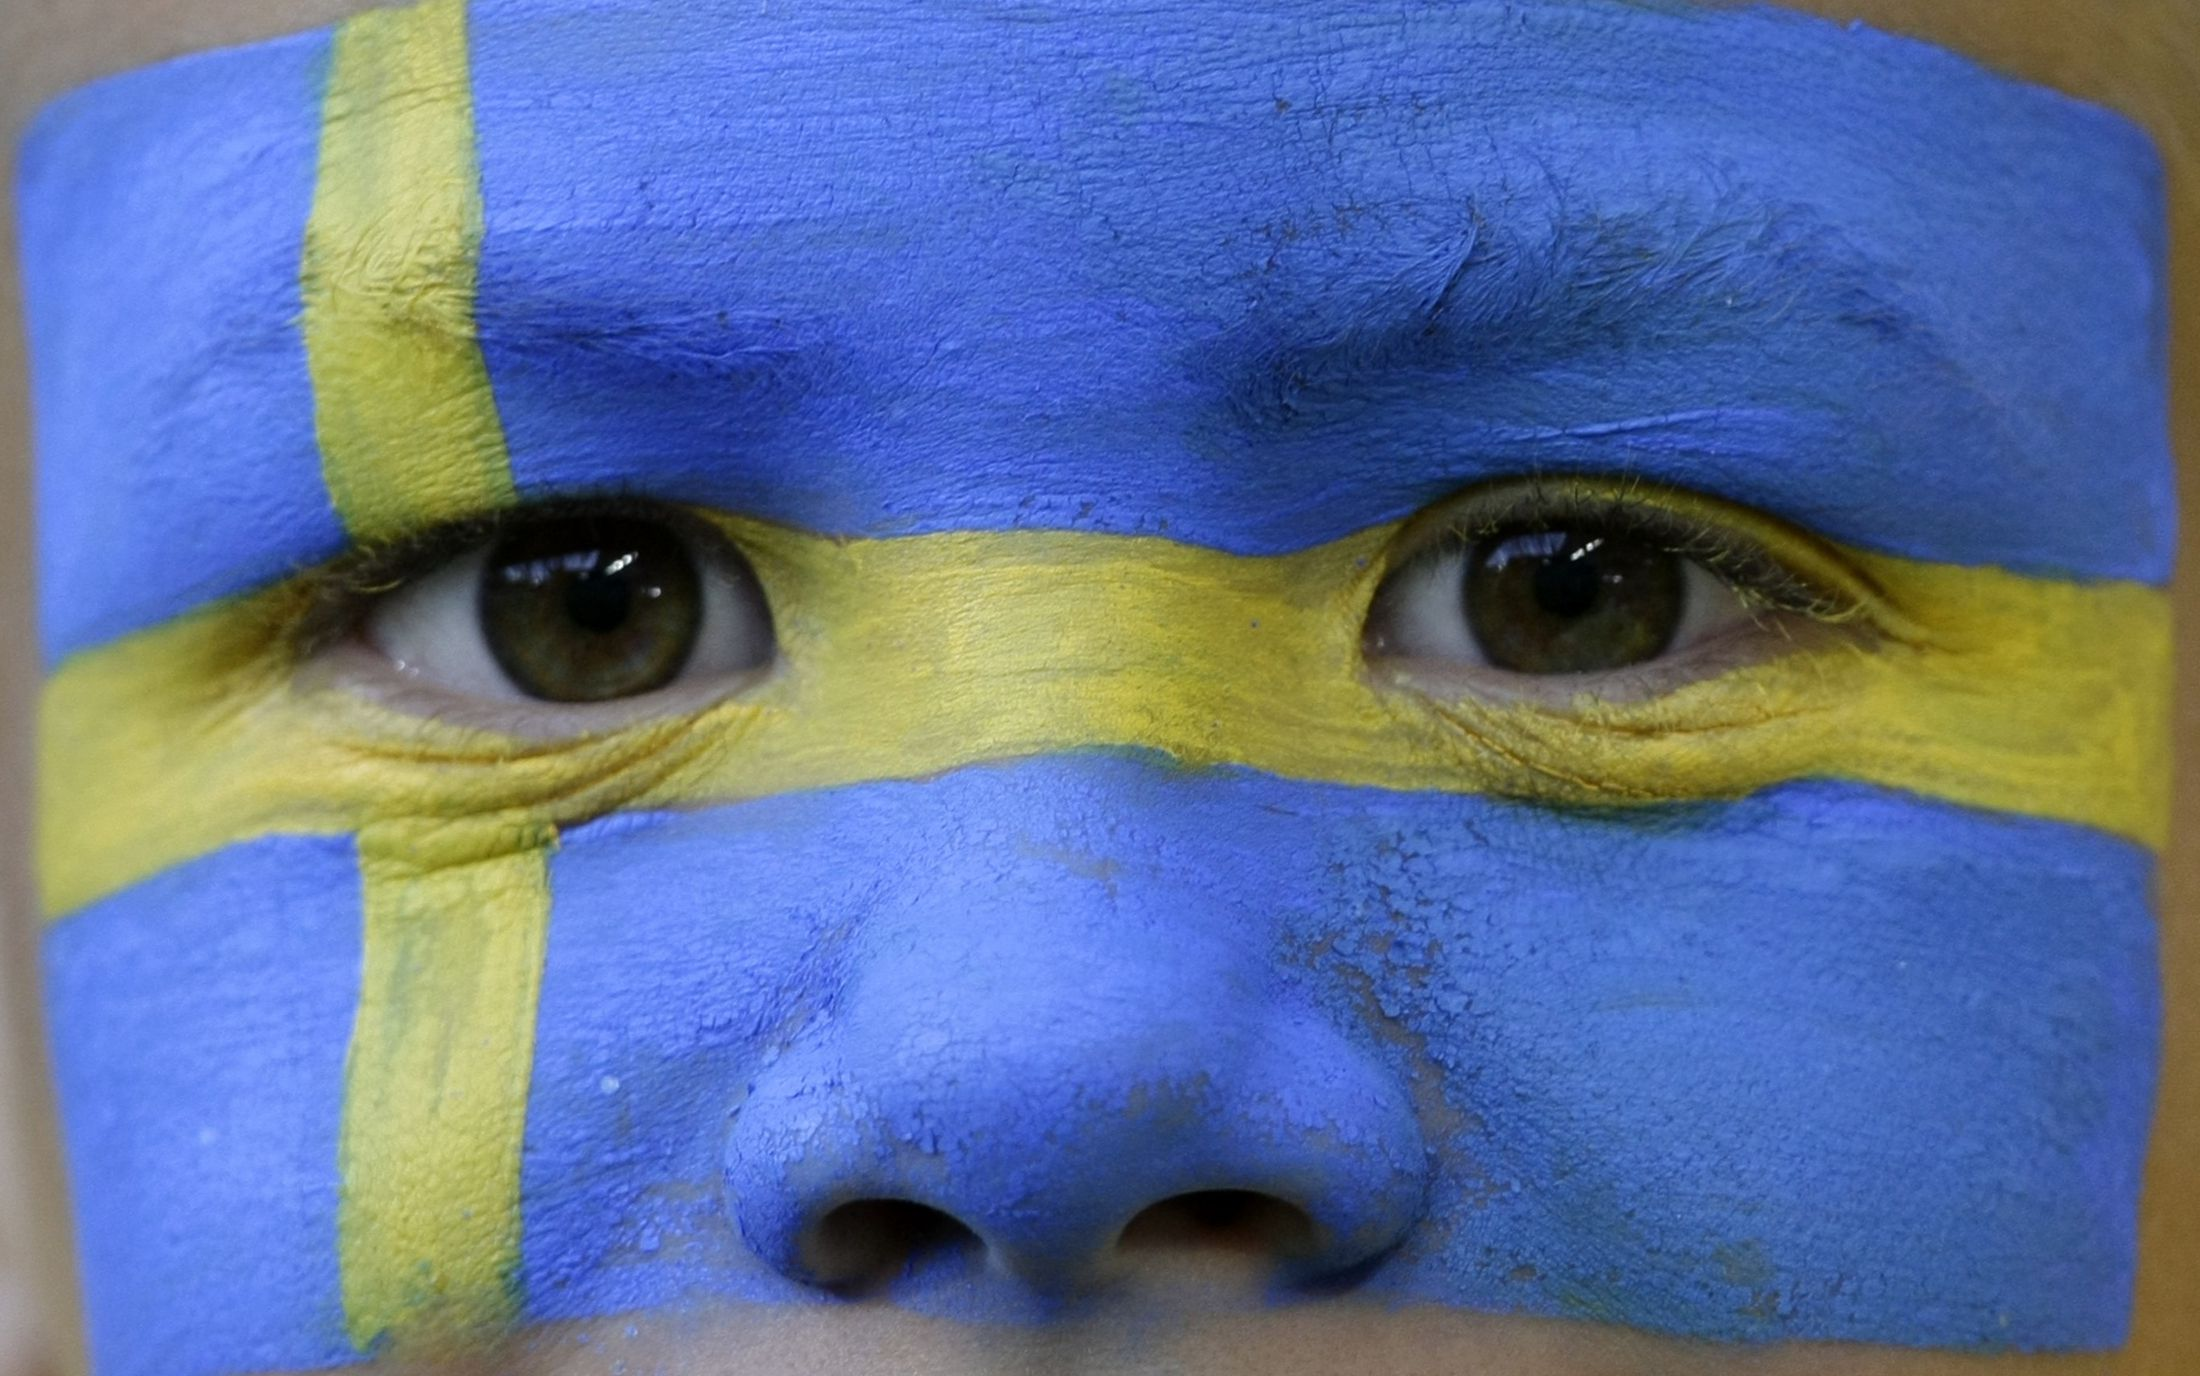 A young Sweden fan waits for the start of their Group D Euro 2008 soccer match against Russia at Tivoli Neu stadium in Innsbruck, June 18, 2008.     REUTERS/Michaela Rehle (AUSTRIA)  MOBILE OUT. EDITORIAL USE ONLY - RTX738O